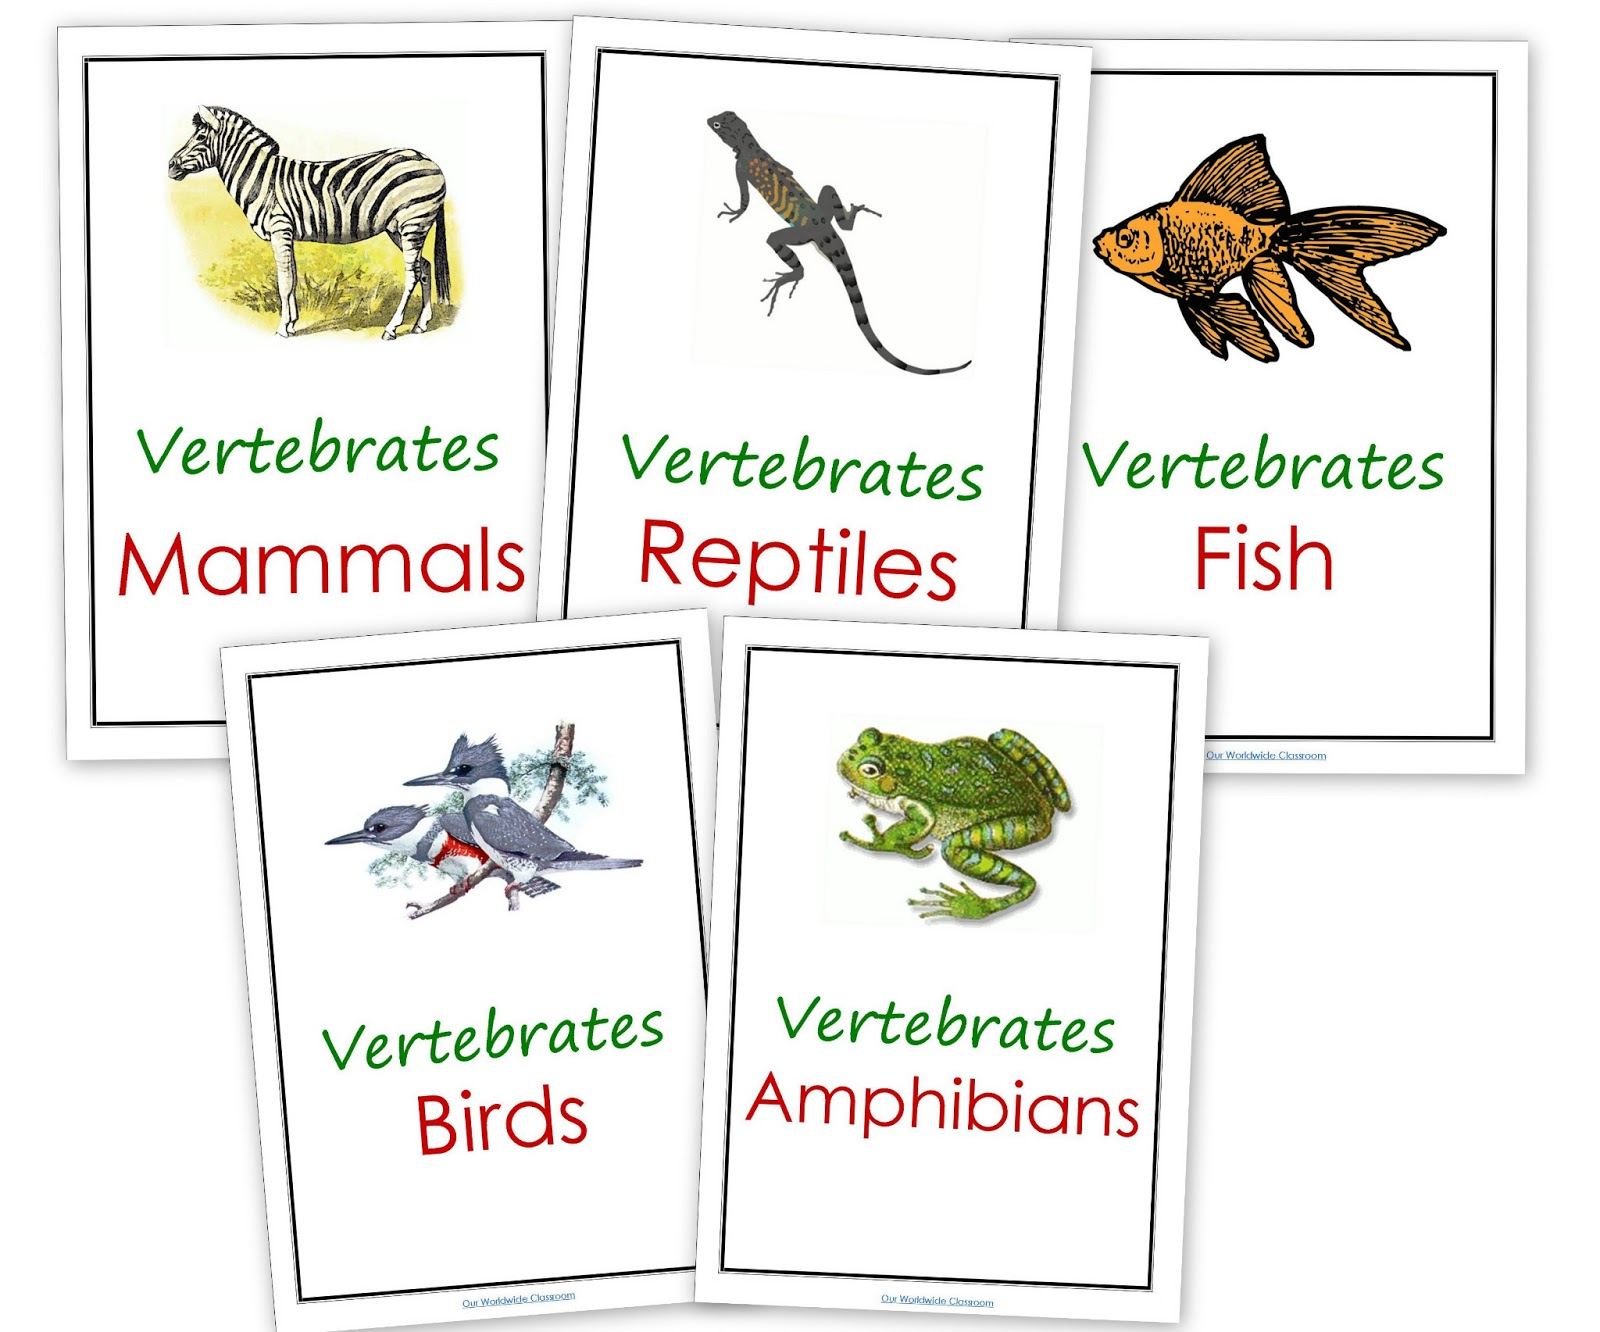 Invertebrates Pictures And Names